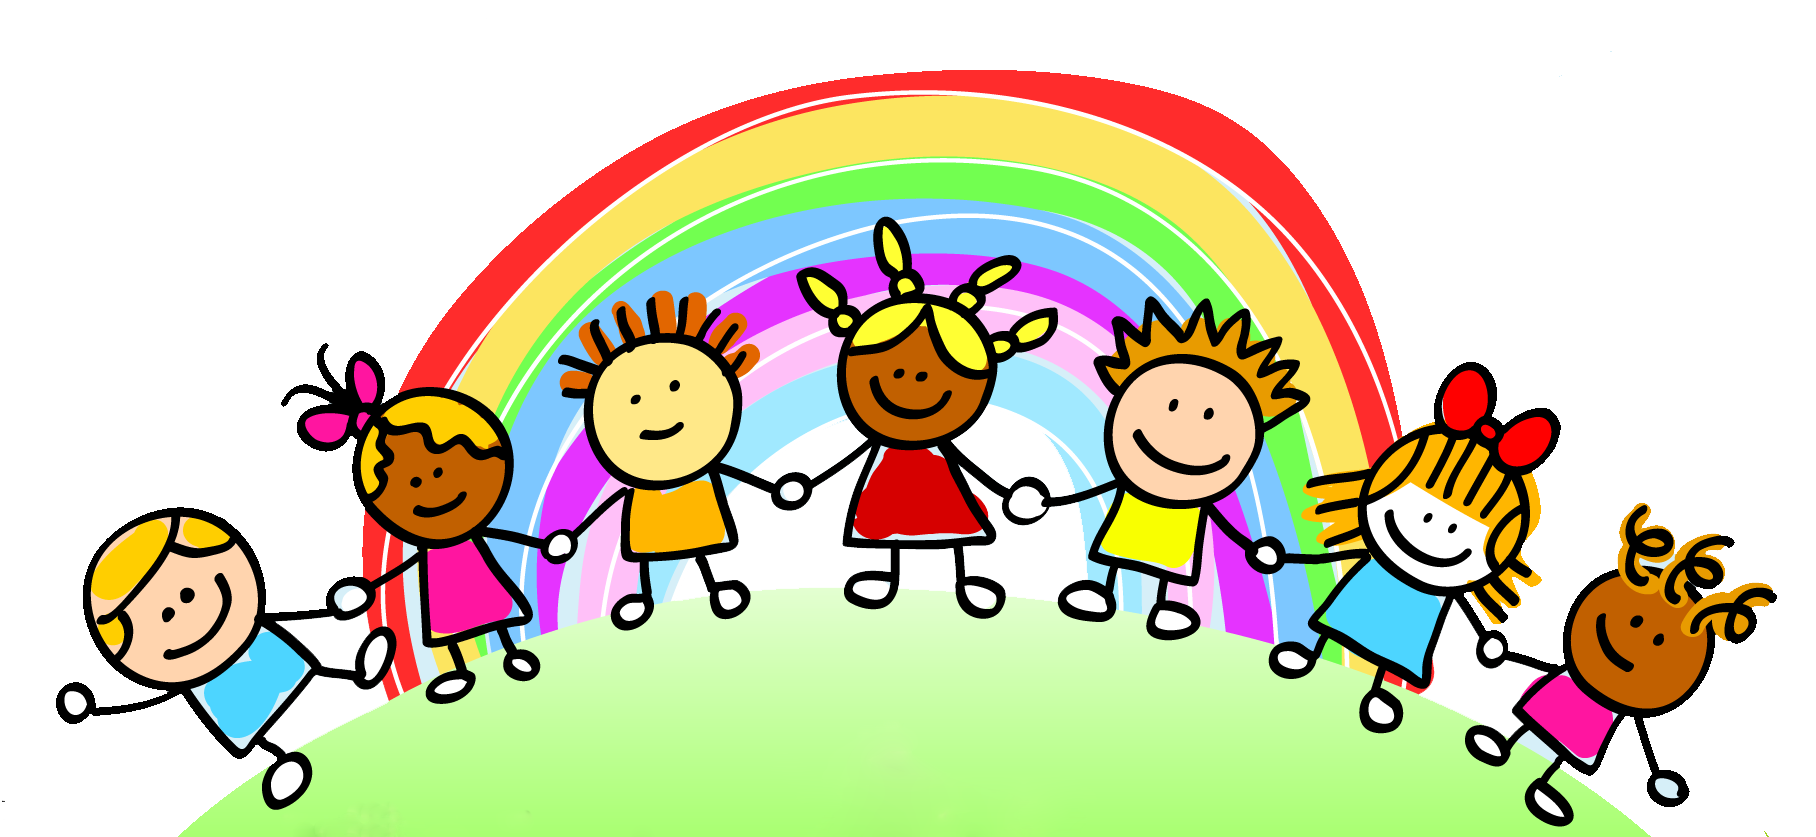 Sun and rainbow with children playing clipart clipart royalty free Sun Cloud Rainbow Clipart | jokingart.com Rainbow Clipart clipart royalty free